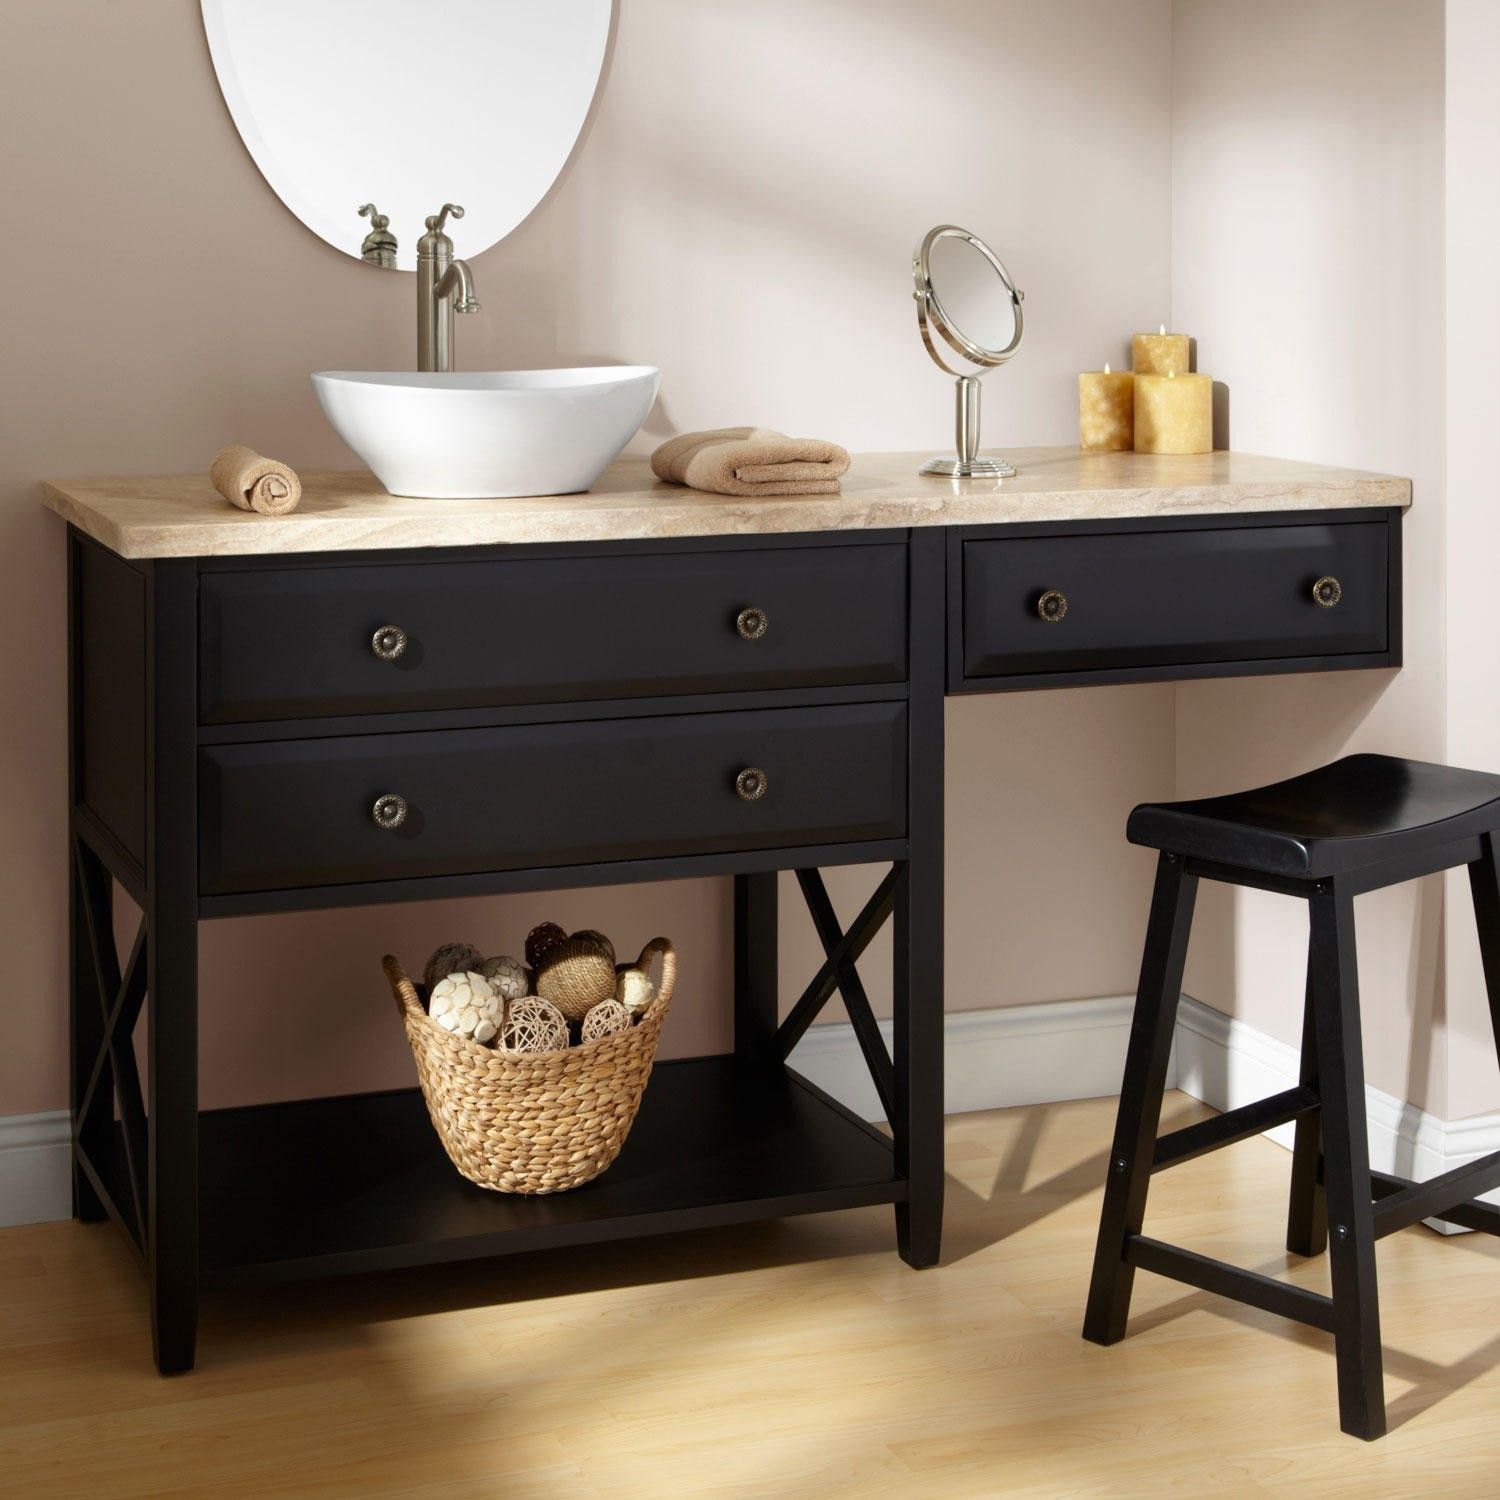 "bathroom vanity with makeup area | 60"" clinton black vanity for"